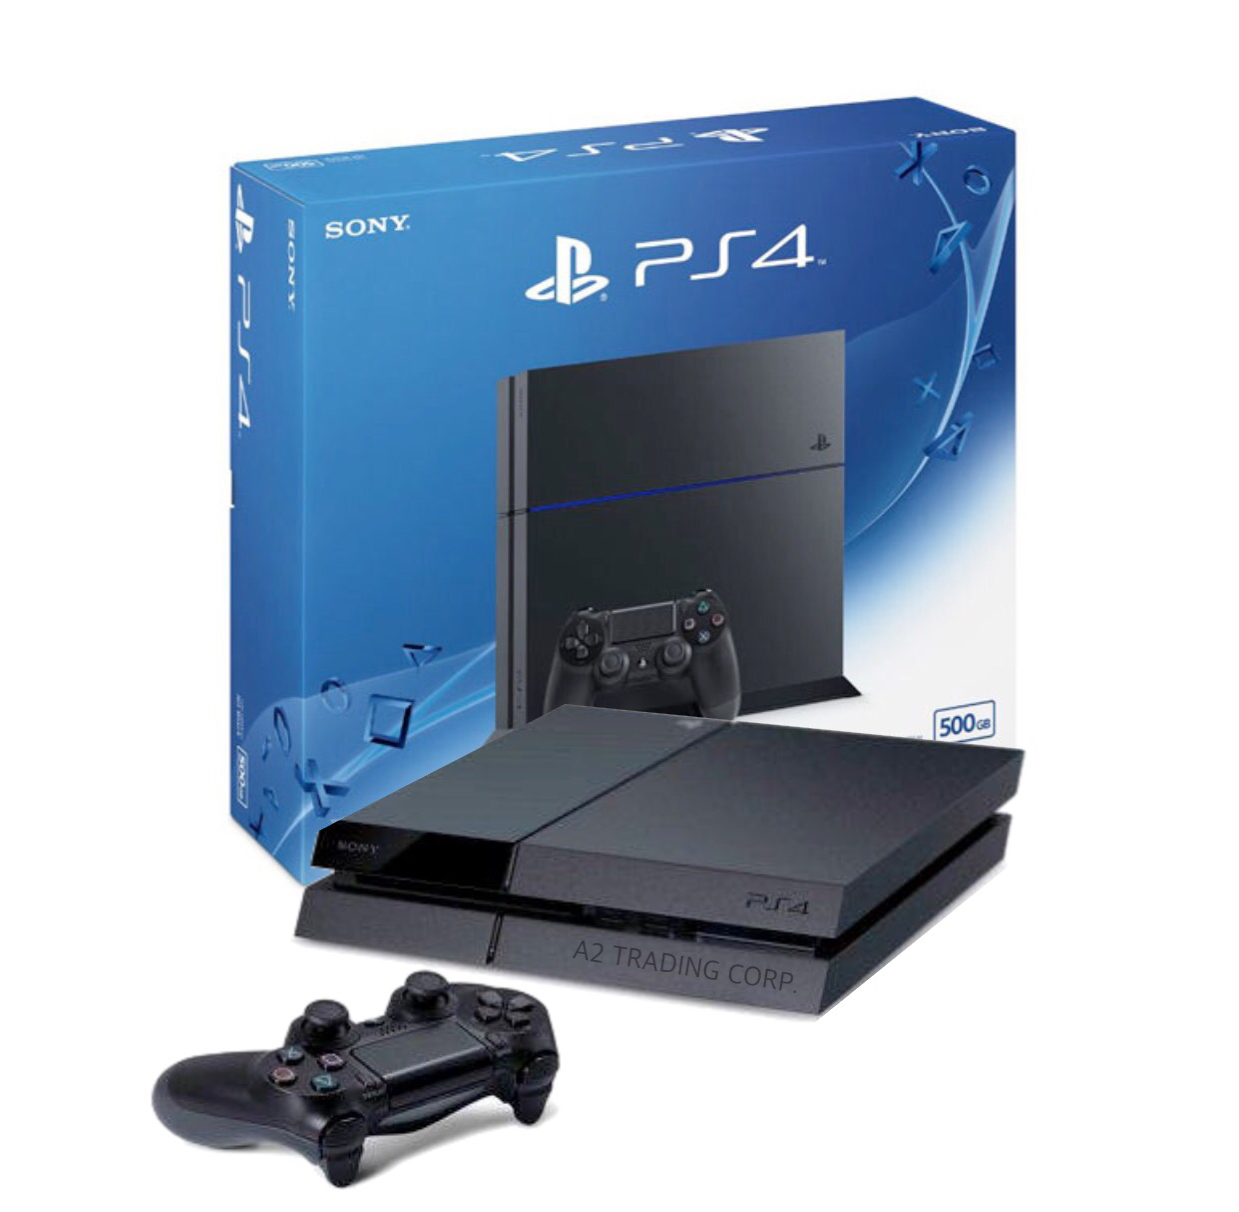 Sony PS4 Console 500GB - Black